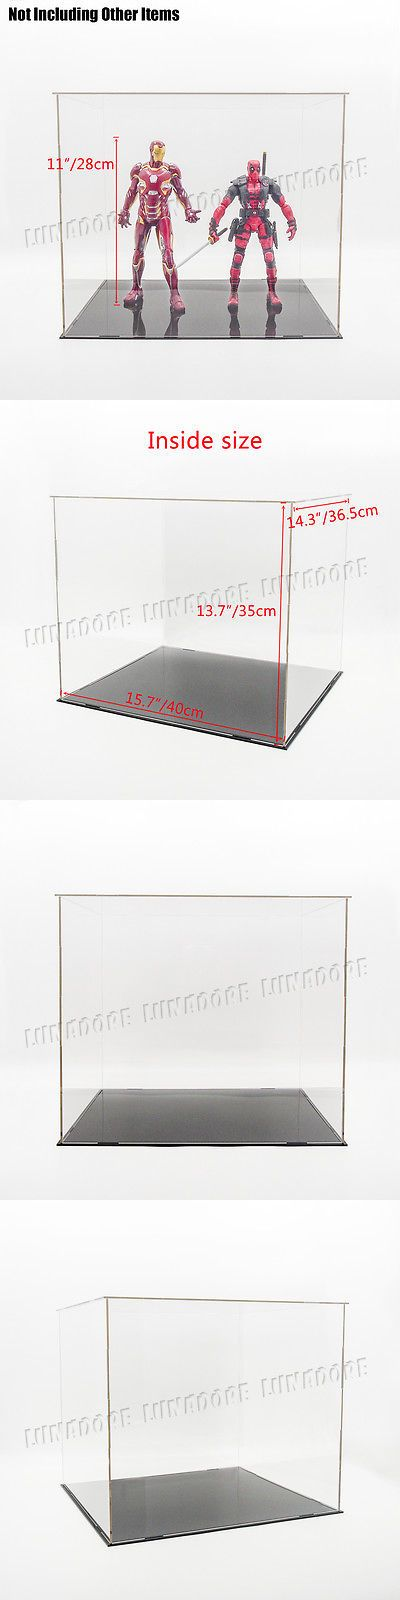 Display Cases and Stands 171135: Us 16 40Cm Acrylic Plastic Display Box Big Perspex Case Dustproof Self-Assembly -> BUY IT NOW ONLY: $39.99 on eBay!